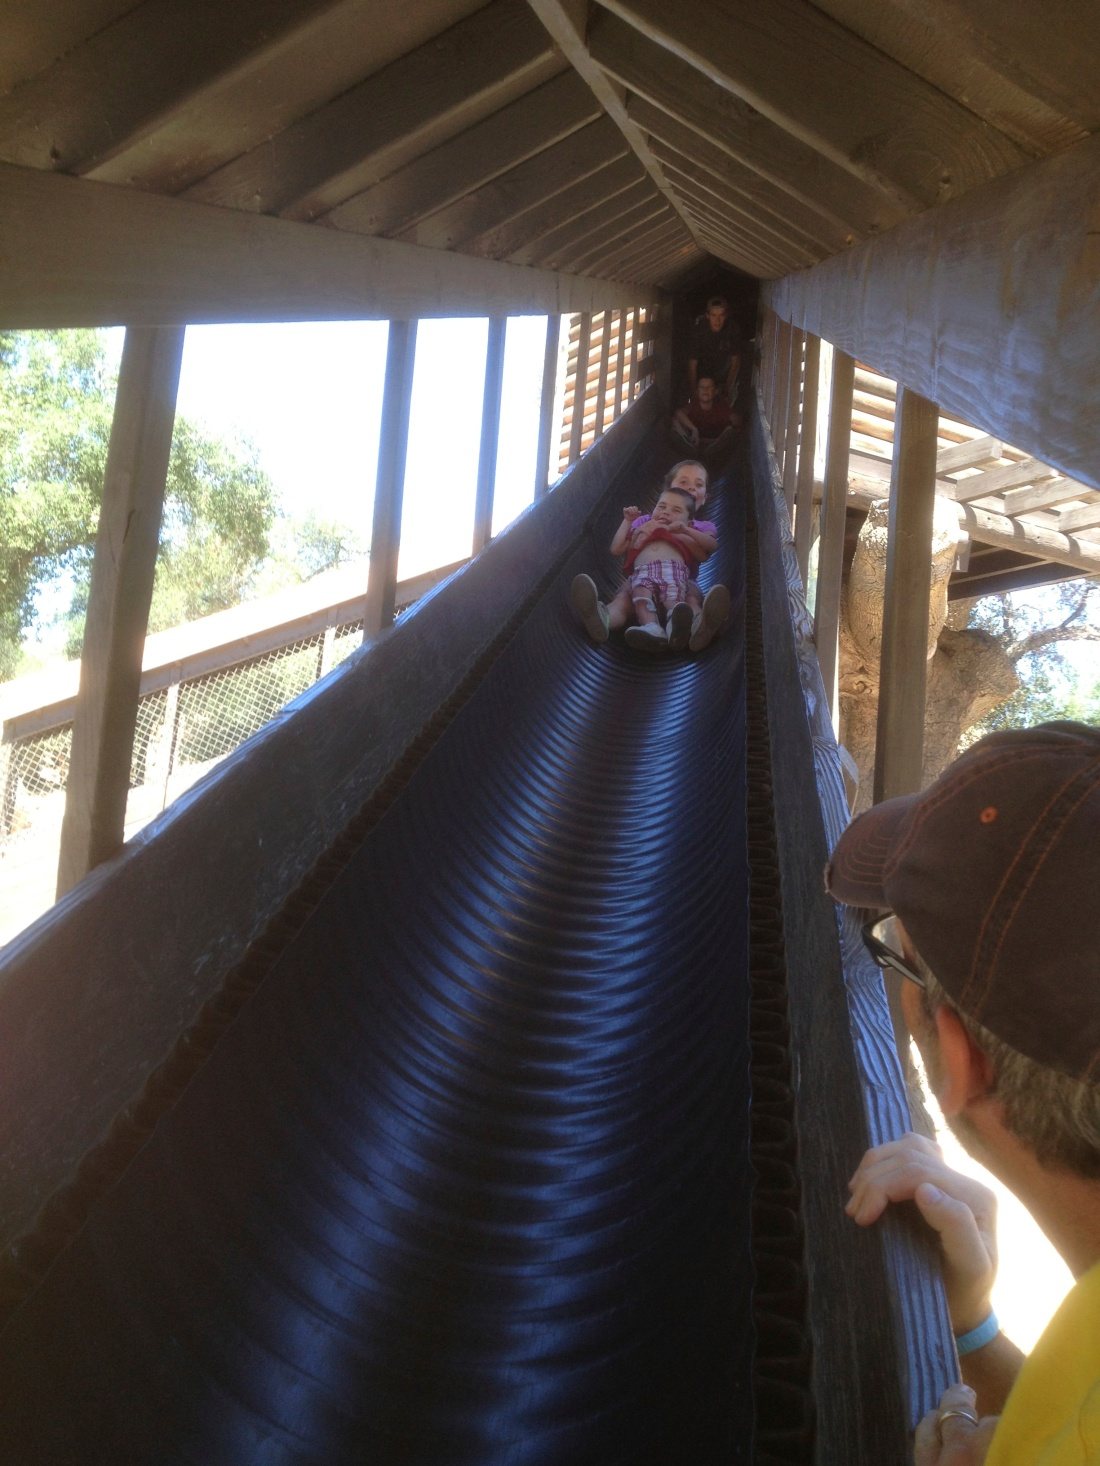 We stayed with our friends who live at Indian Hills Camp...the big sibs made sure Rudy got a turn on the giant slide!